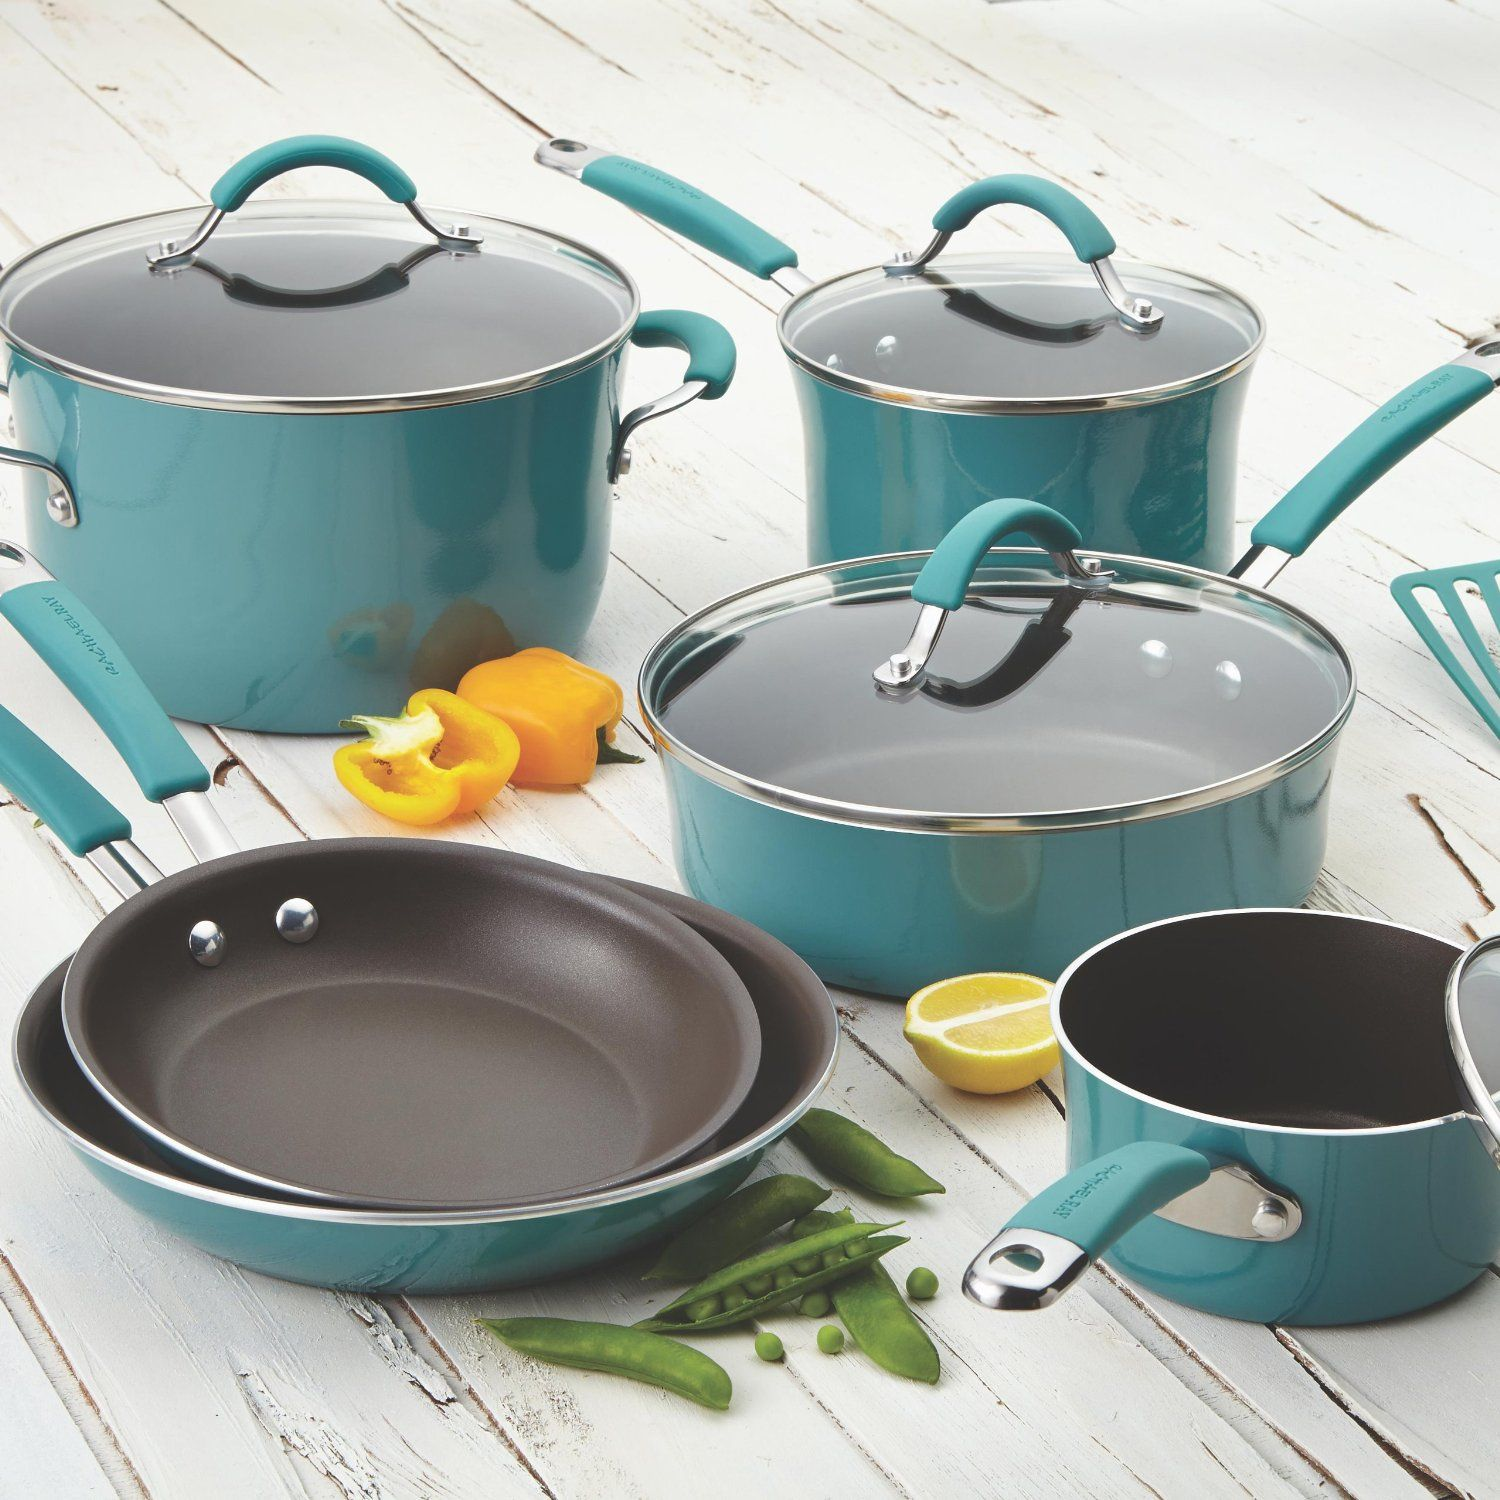 Rachael Ray 12-Piece Cookware Set in Agave Blue (2) | Cookware set ...